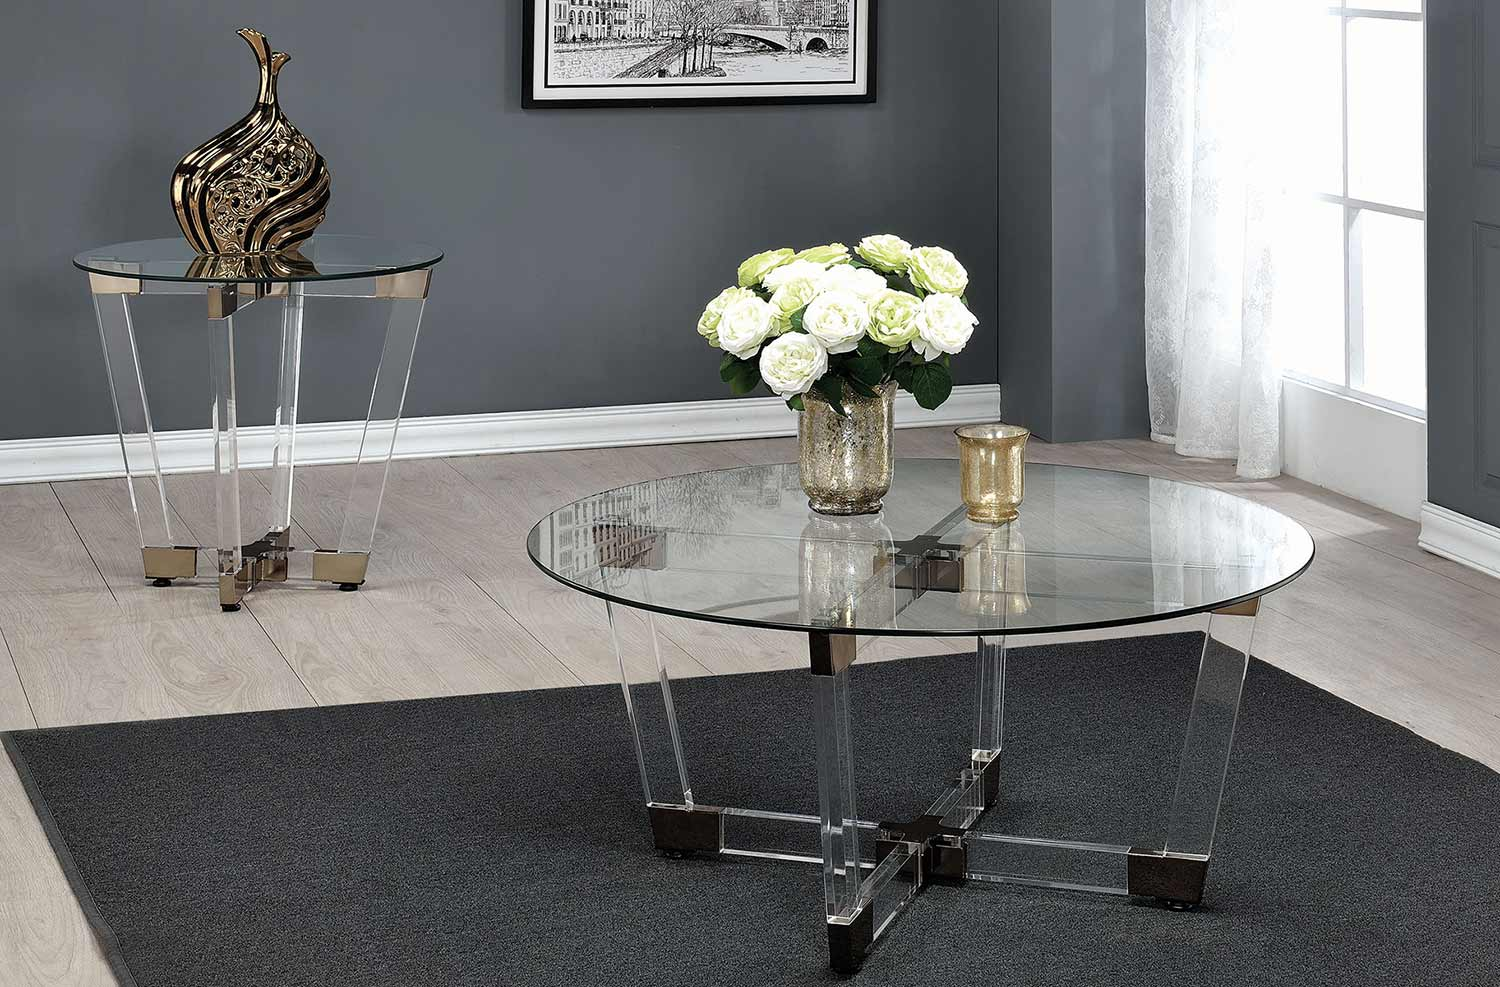 Coaster 720718 Occasional/Coffee Table Set - Chrome/Clear Acrylic ...